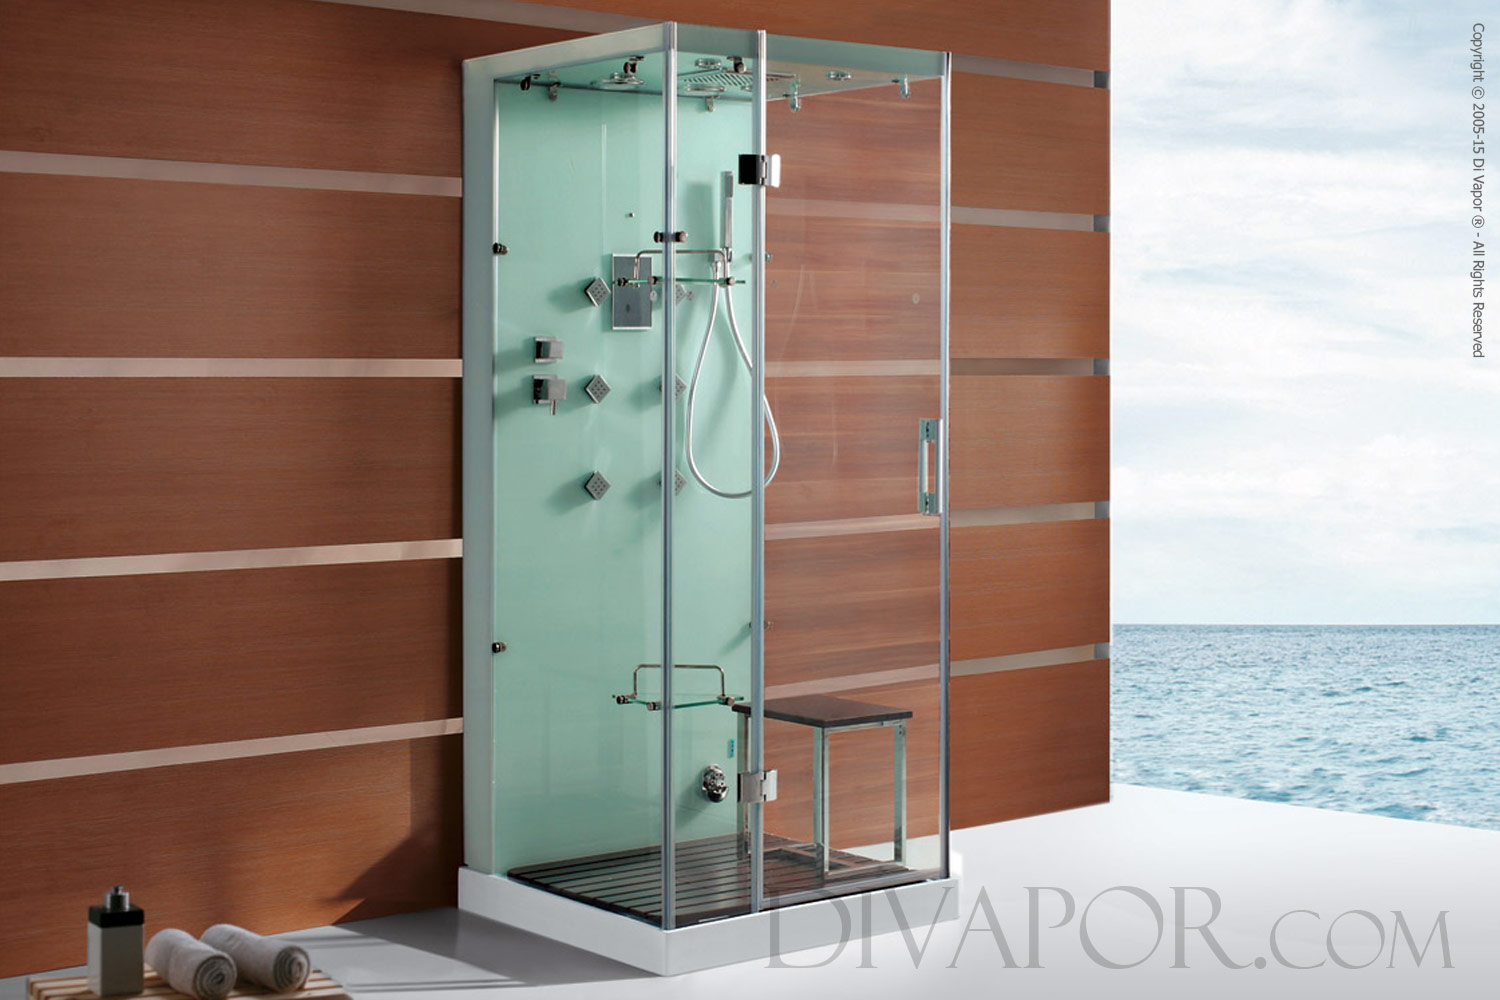 Steam Shower Cabins - The Savona (S-DV6023W)